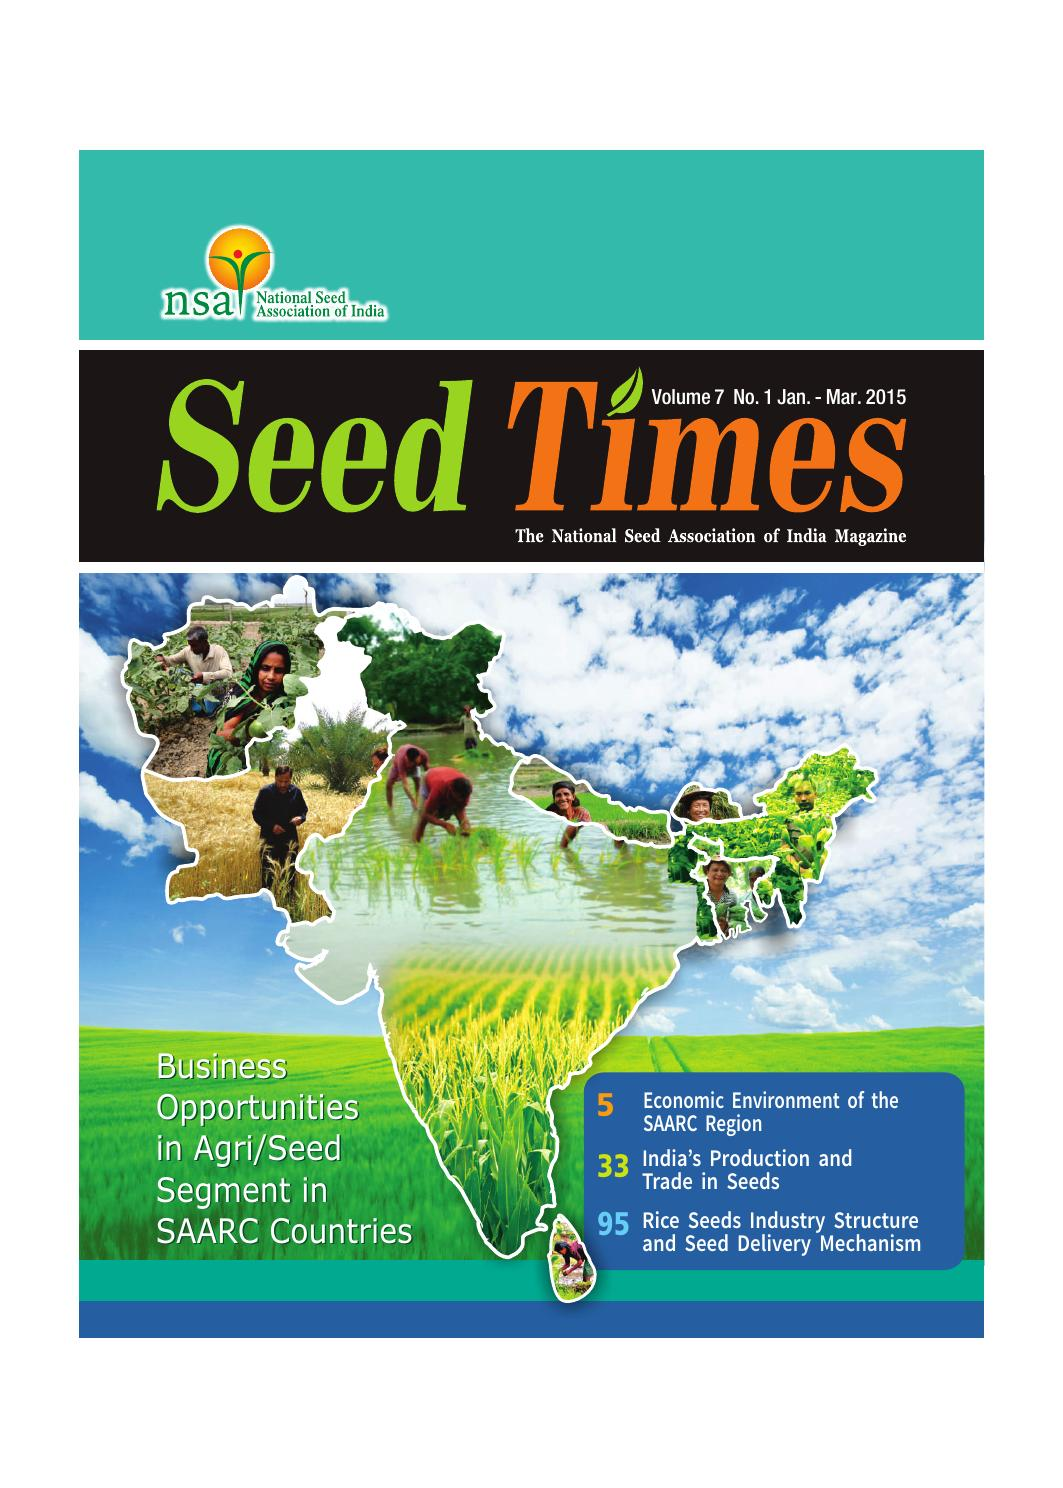 Business Opportunities in Agri/Seed Segment in SAARC